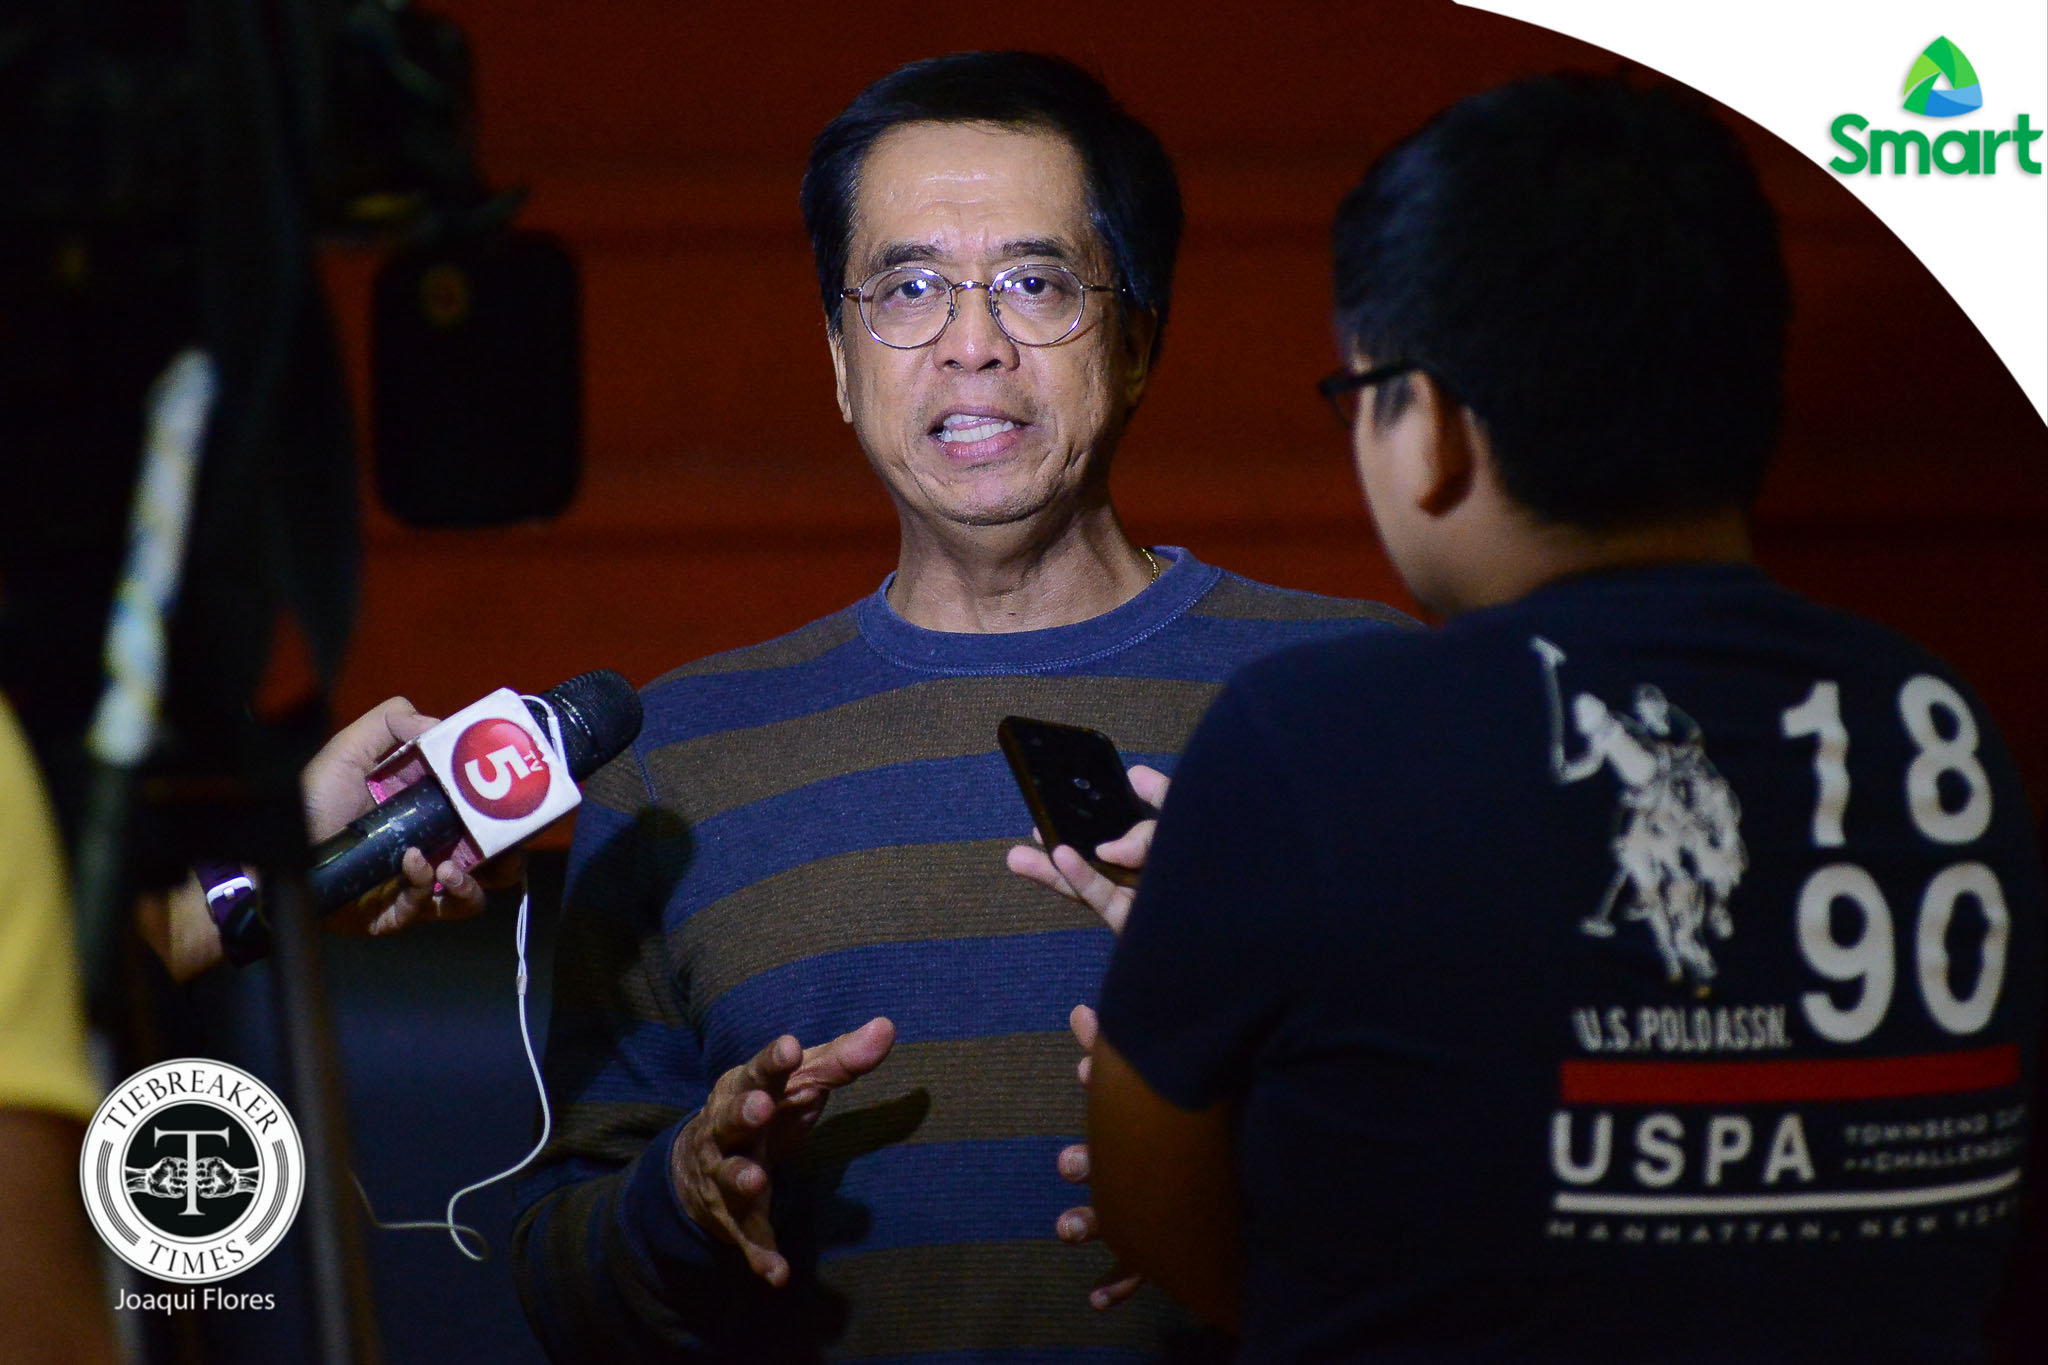 Philippine Sports News - Tiebreaker Times Chito Narvasa commends Chooks-to-Go for 'eagerness to help' PH basketball Basketball News PBA  Ronald Mascarinas PBA Season 42 Chooks-to-Go Chito Narvasa